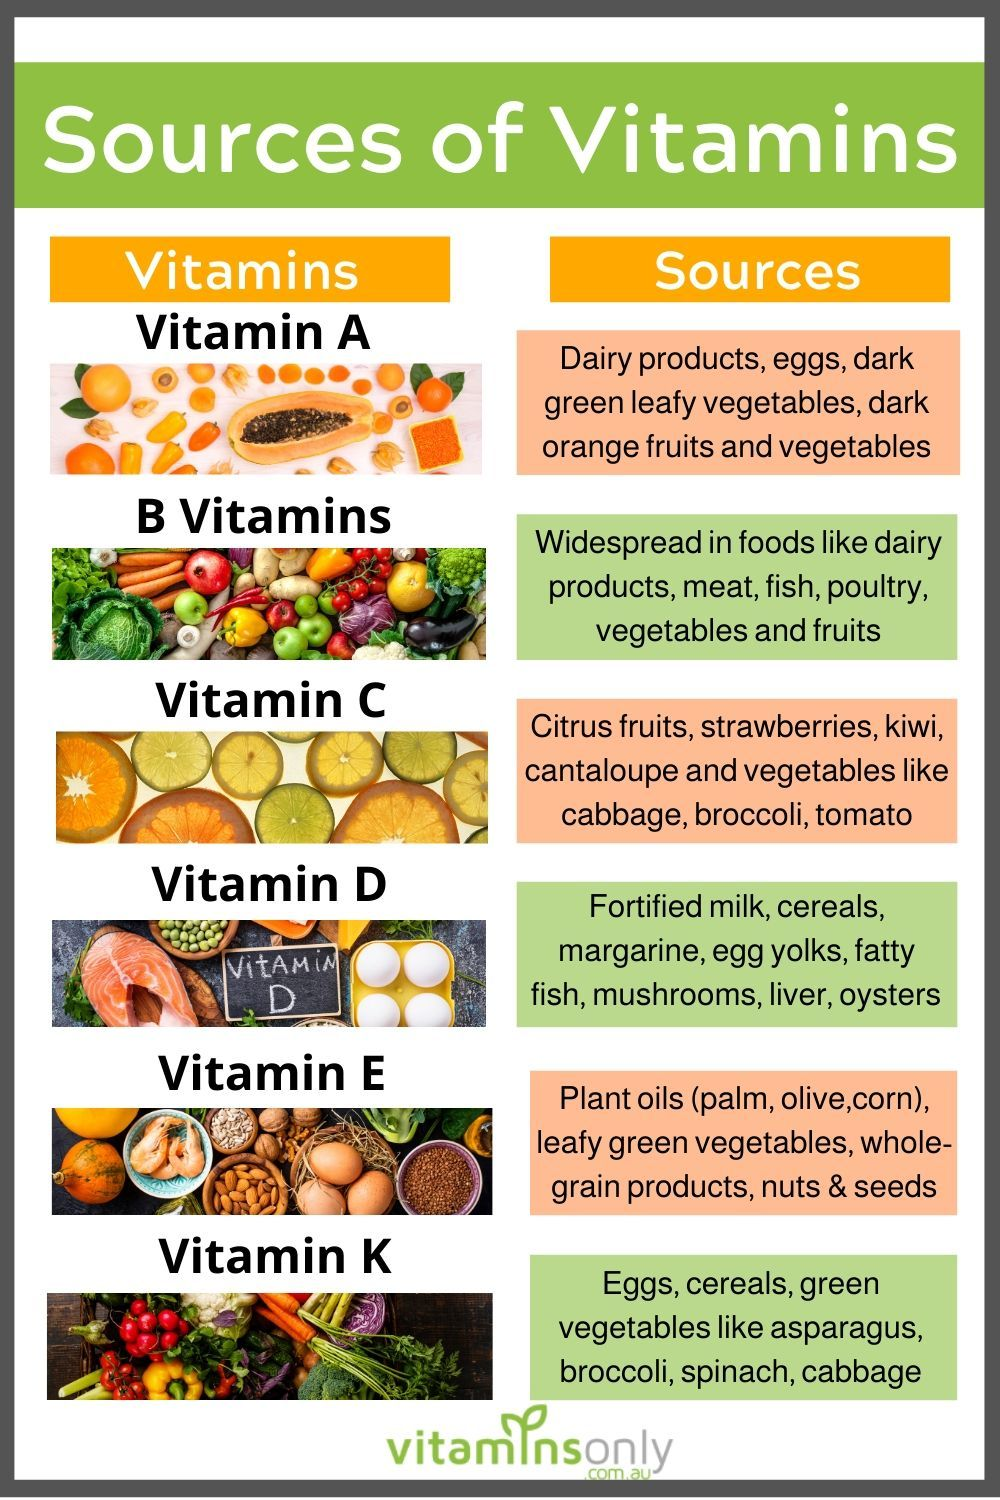 Food Sources of Vitamins